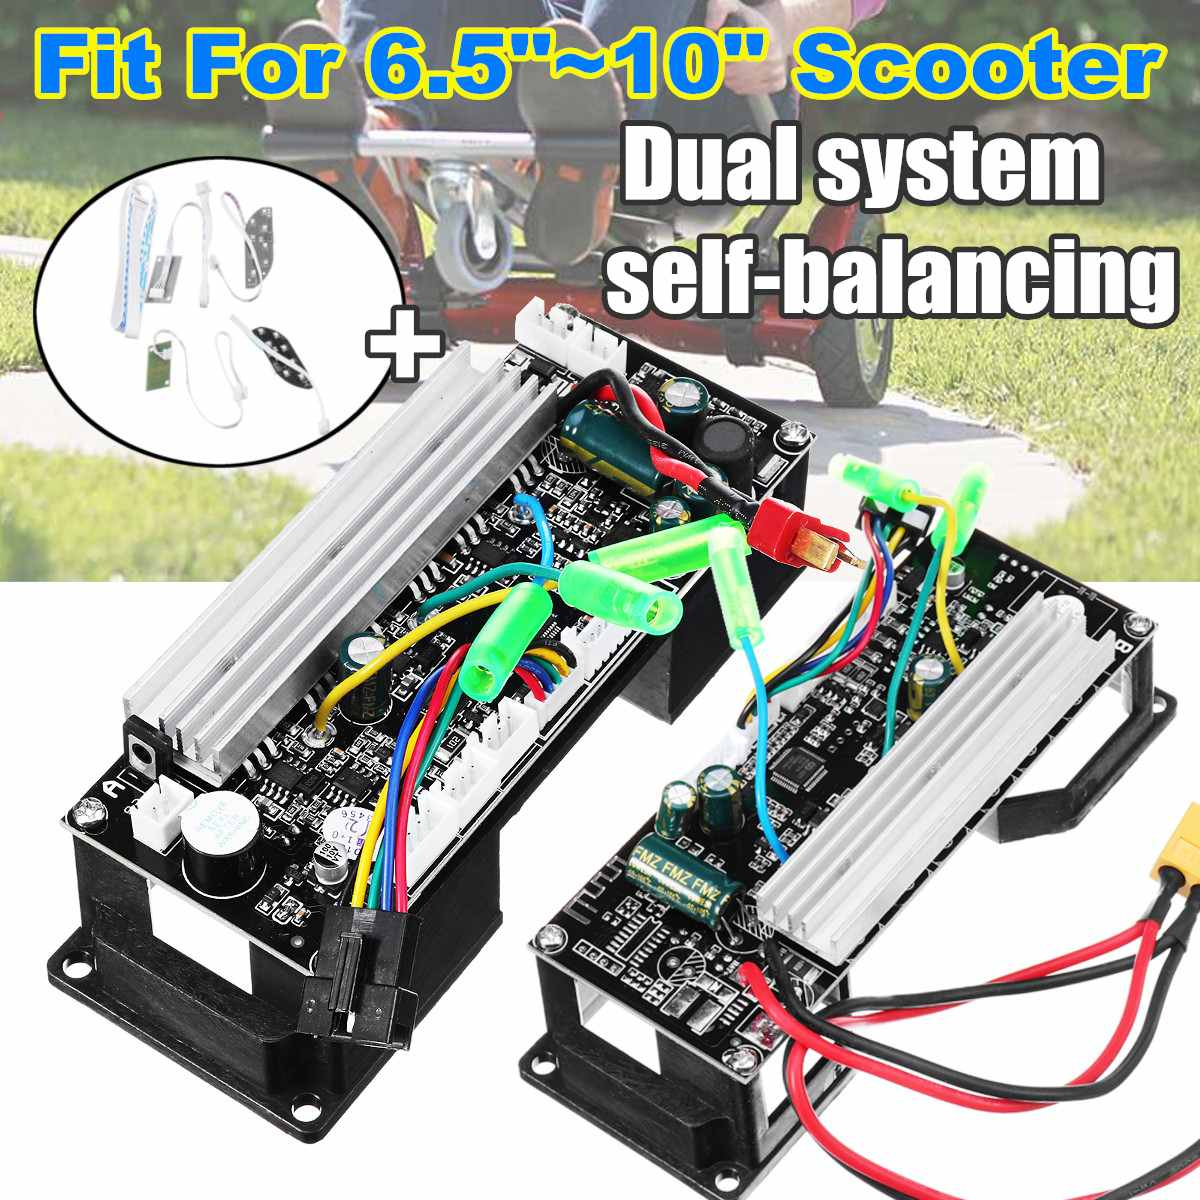 Remote Control font b Motherboard b font Main Circuit Board Cable Switch Balance DIY Scooter Repair